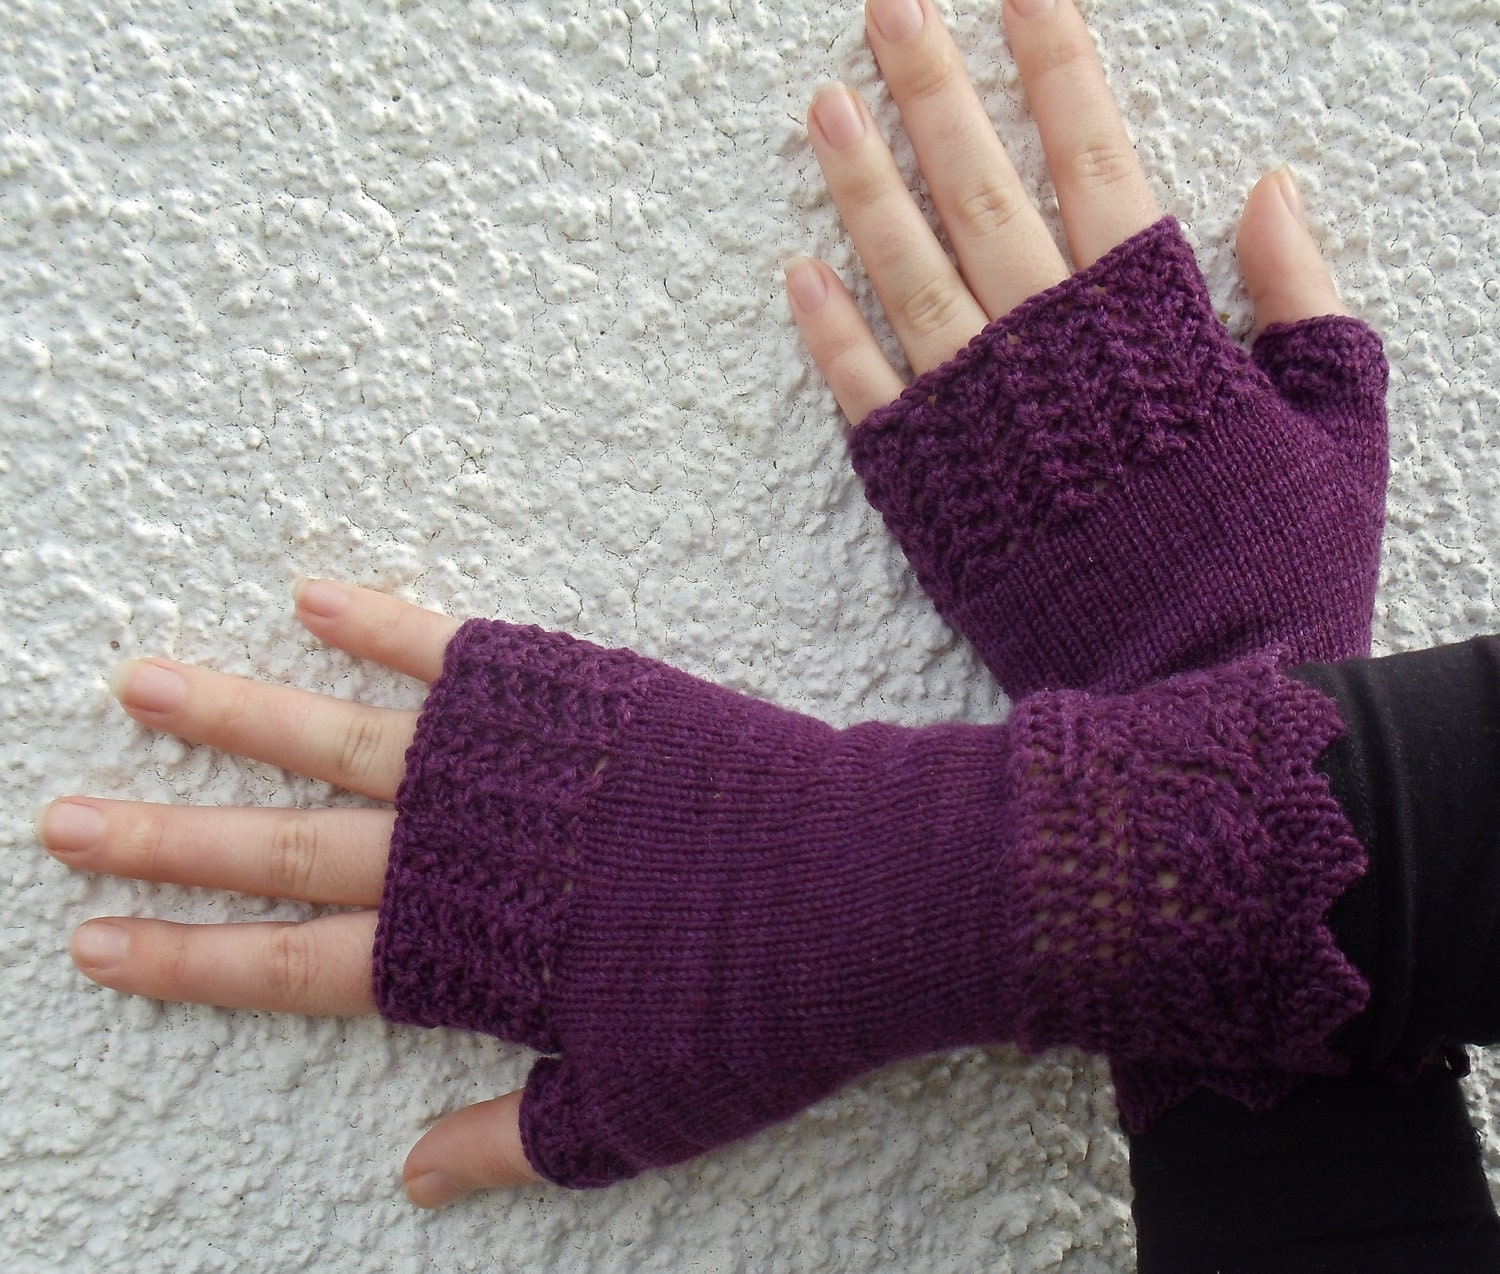 Fingerless Gloves Knitting Pattern with free by TheWoollyKnitter